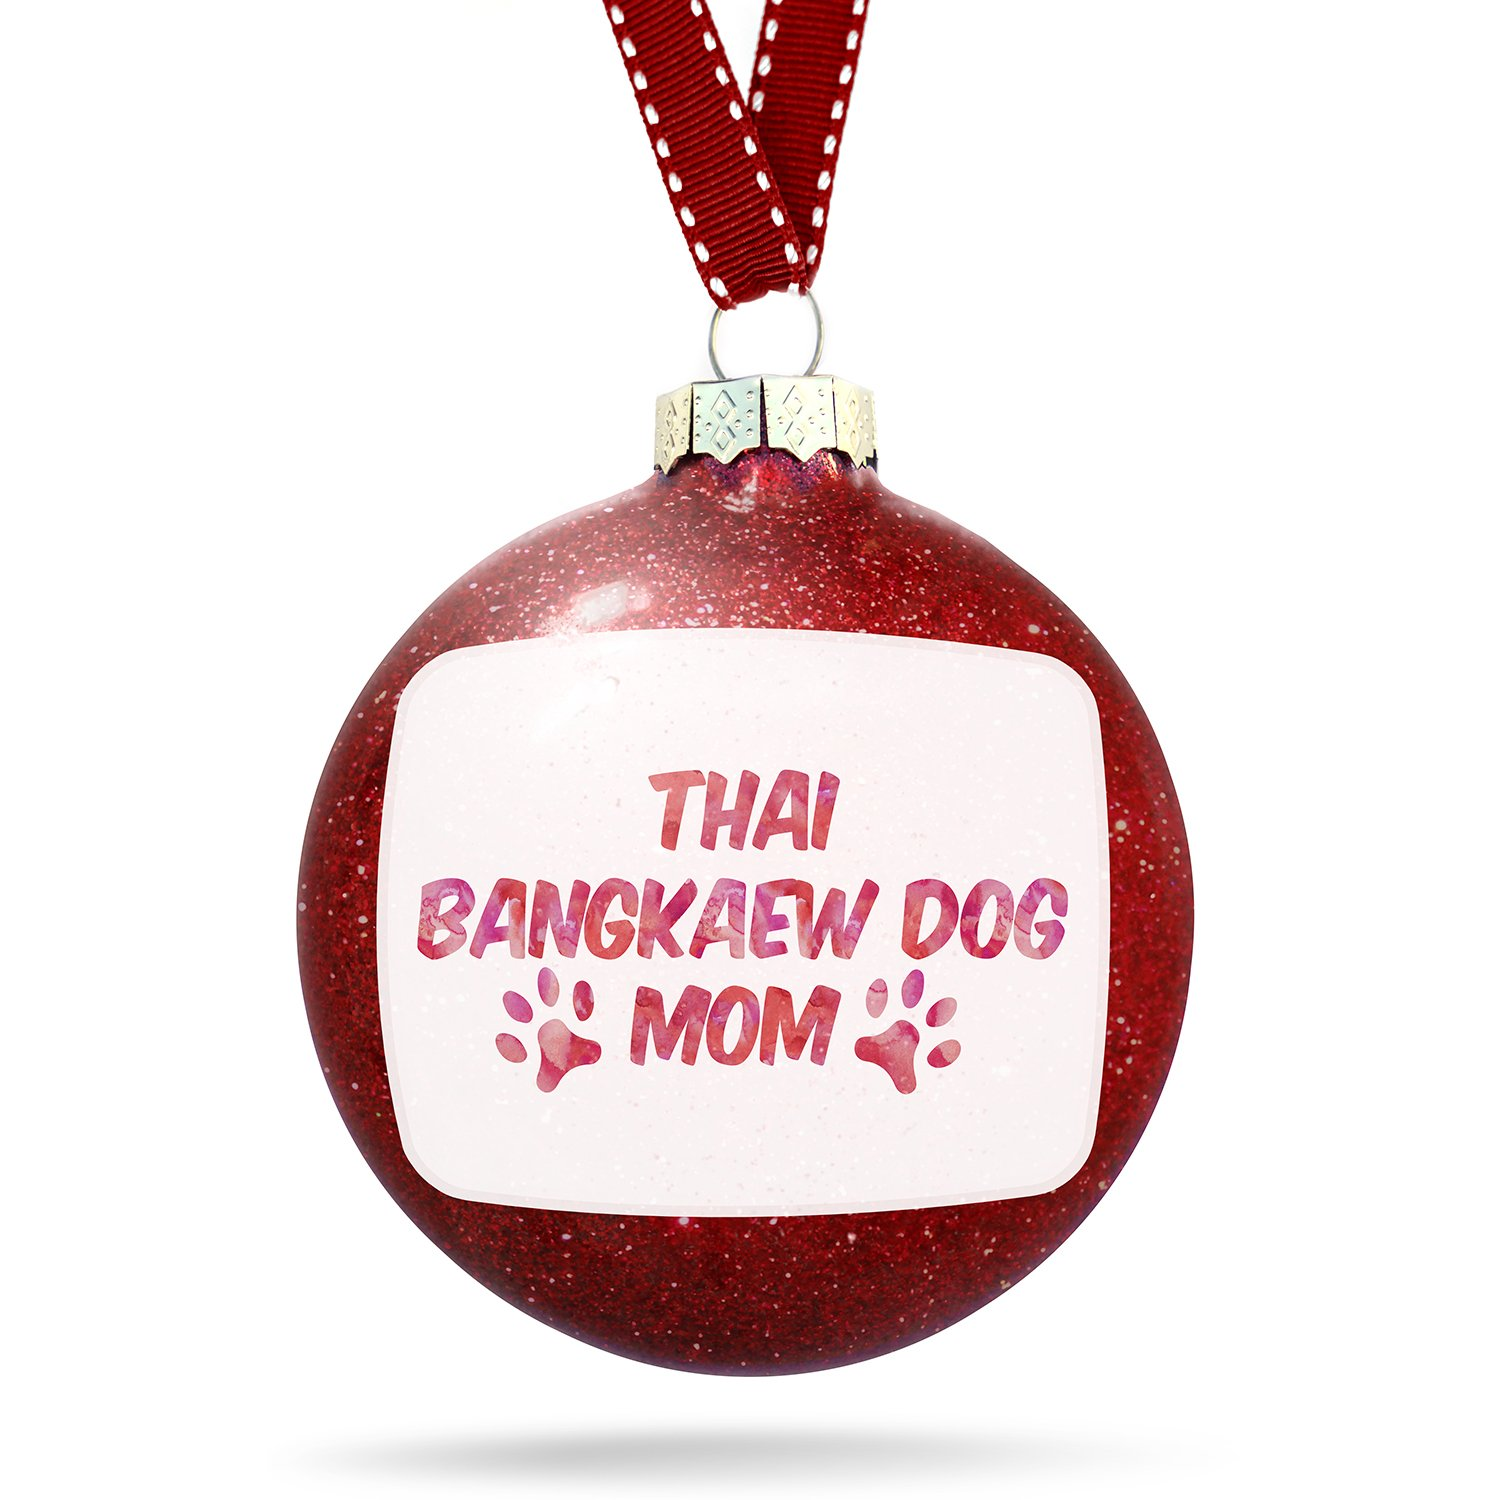 Christmas Decoration Dog & Cat Mom Thai Bangkaew Dog Ornament by NEONBLOND